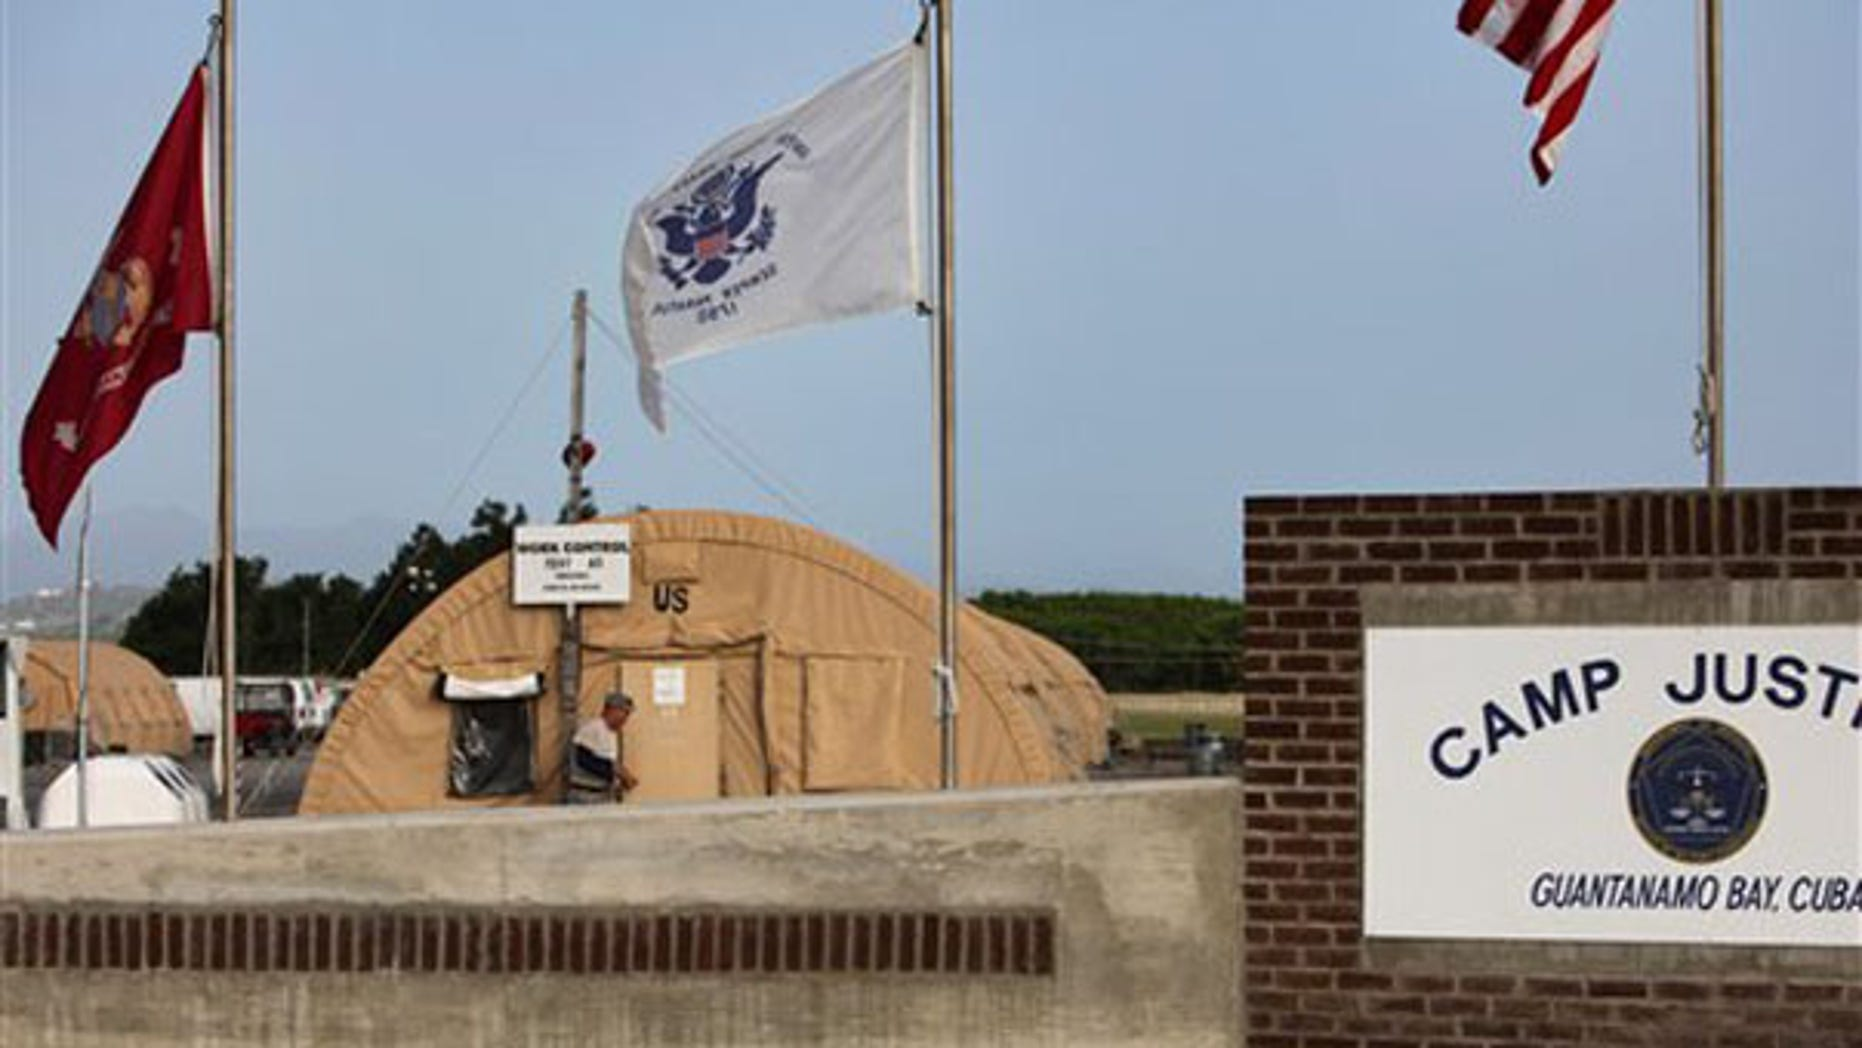 FILE: U.S. flags hang above the sign marking the Camp Justice compound at Guantanamo Bay Naval Base in Cuba. (AP Photo)